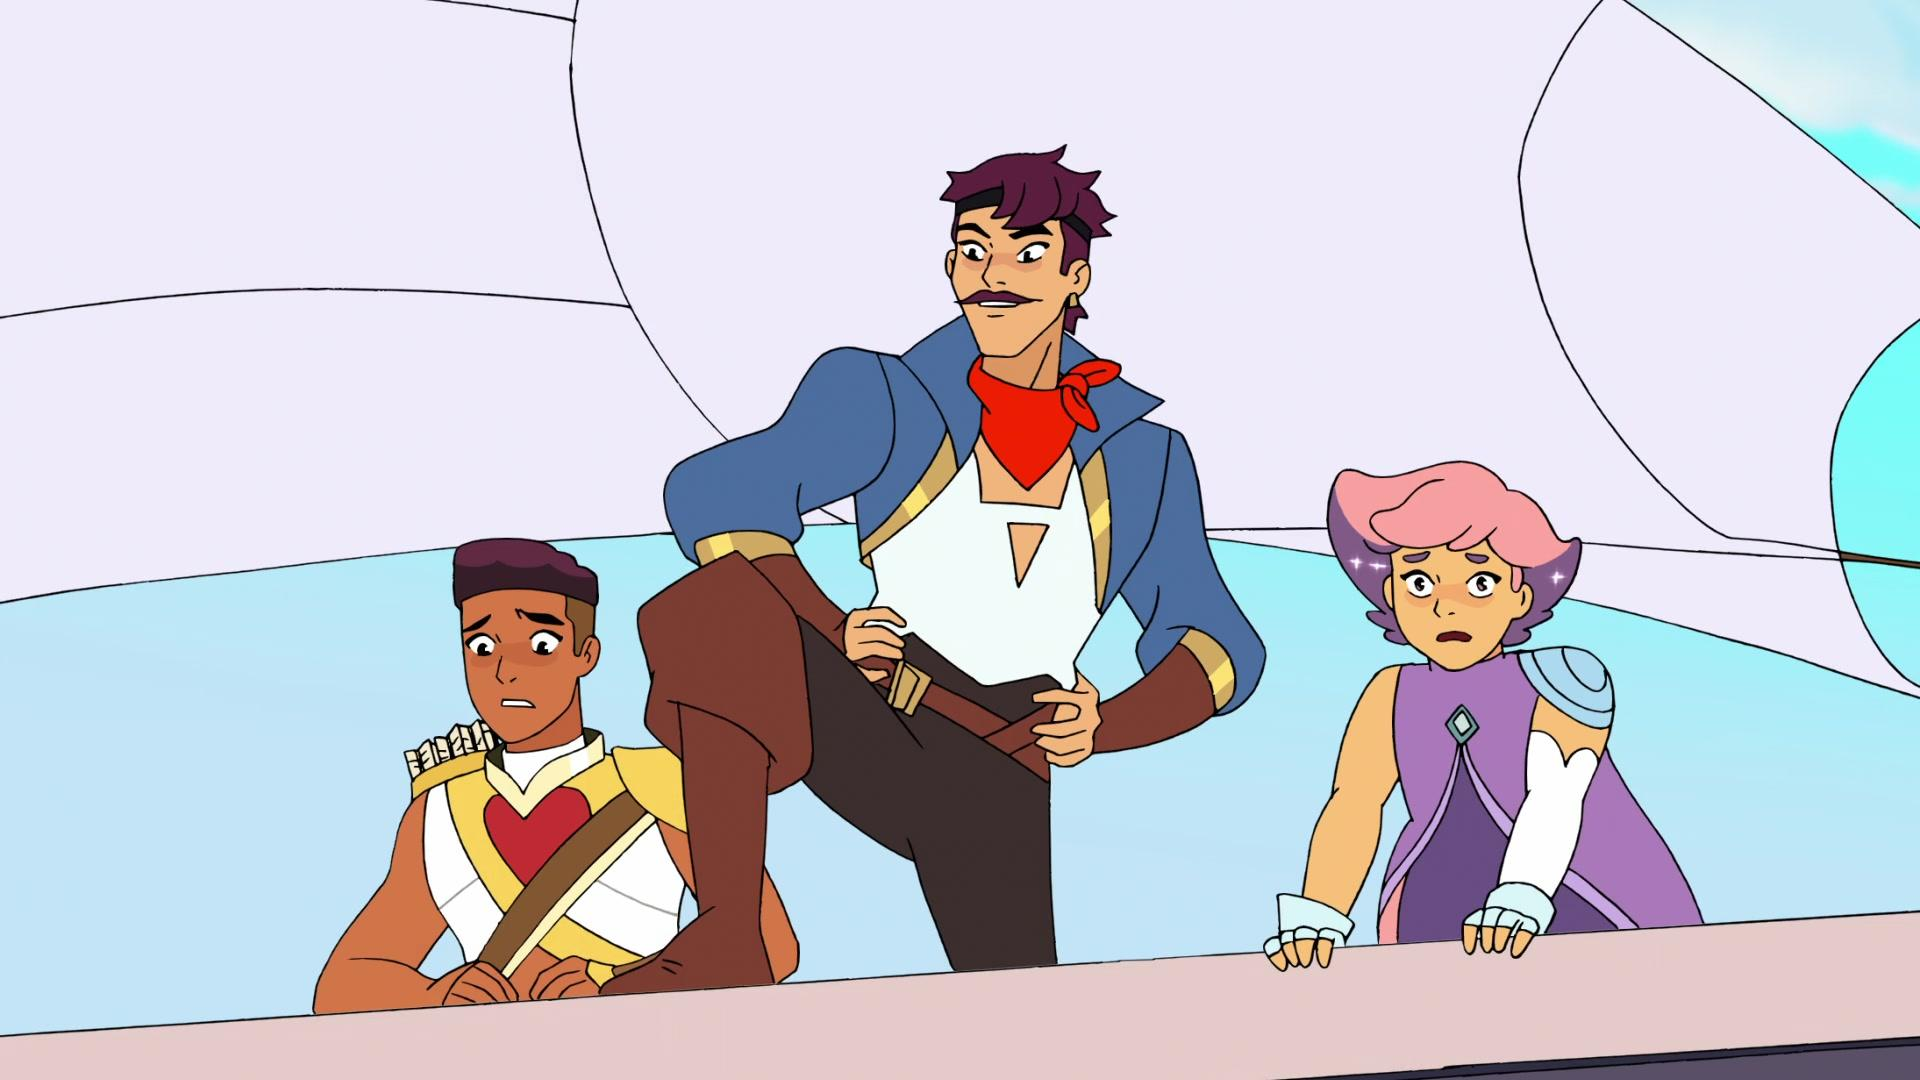 She-Ra and the Princesses of Power S01